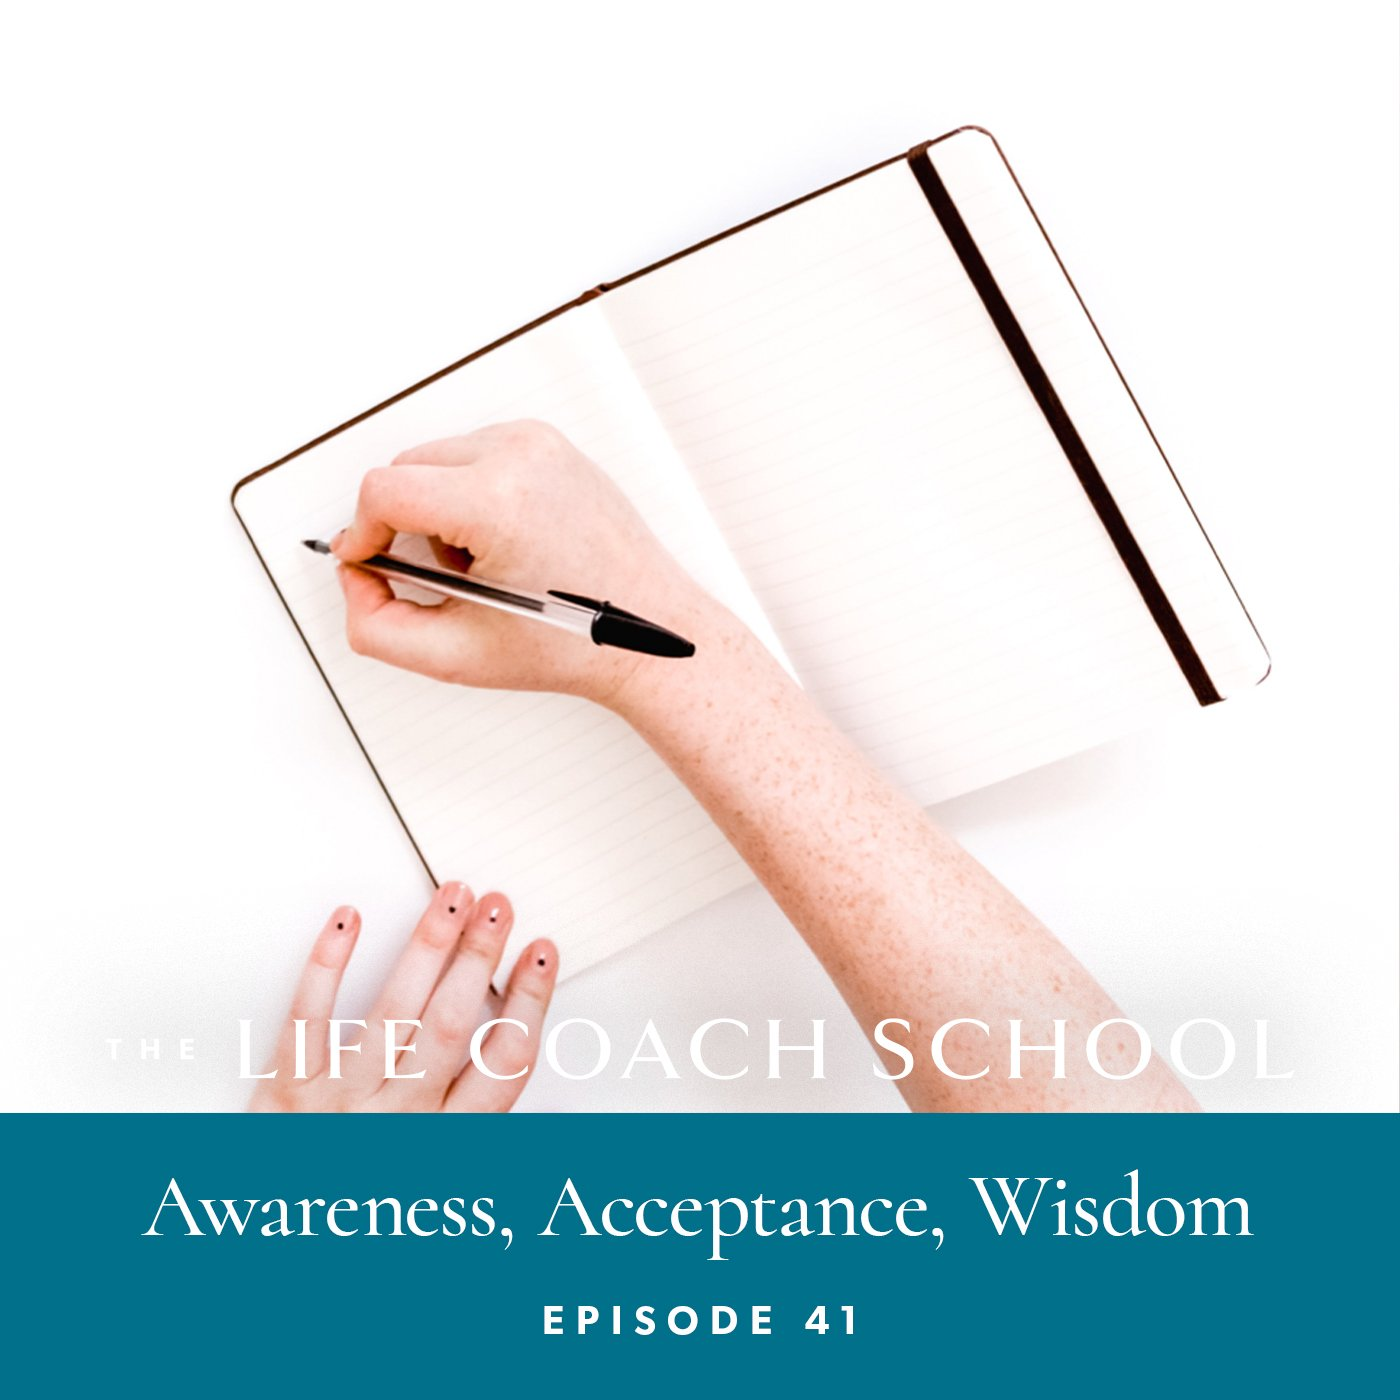 The Life Coach School Podcast with Brooke Castillo | Episode 41 | Awareness, Acceptance, Wisdom